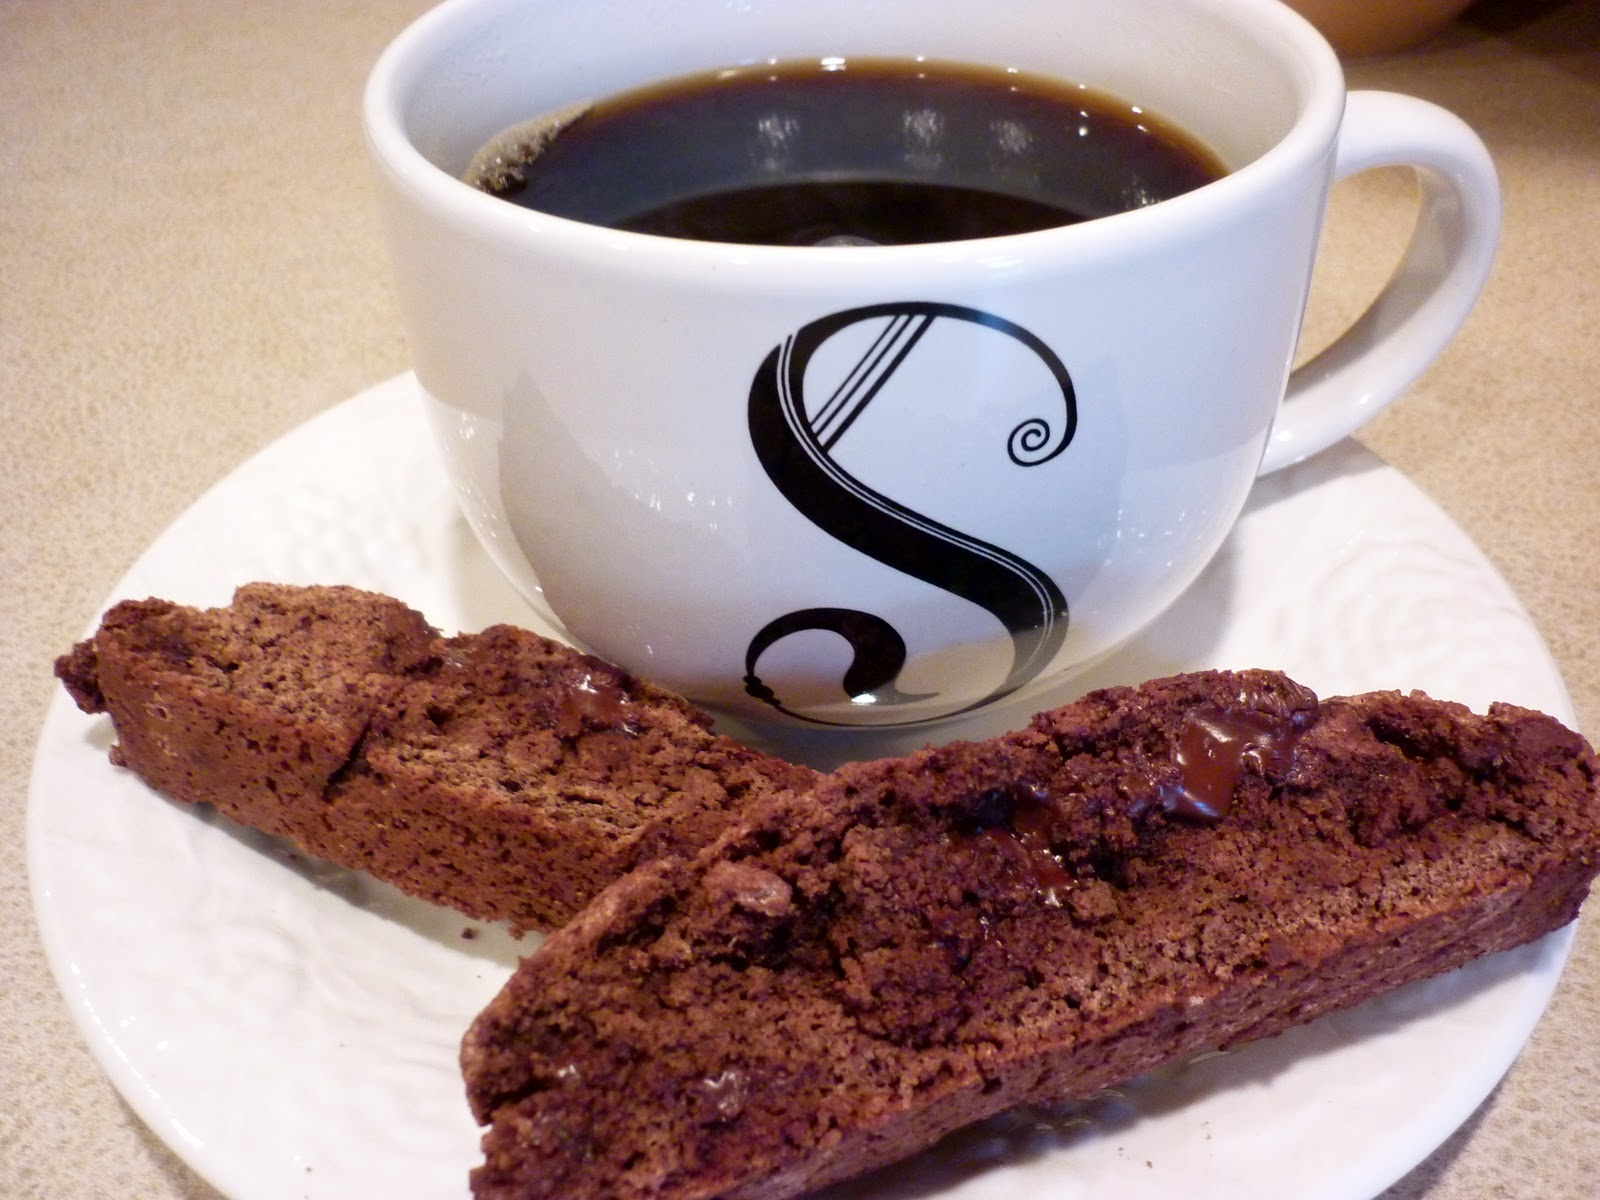 ... Life, One Measuring Cup At A Time: Chocolate Chocolate-Chip Biscotti